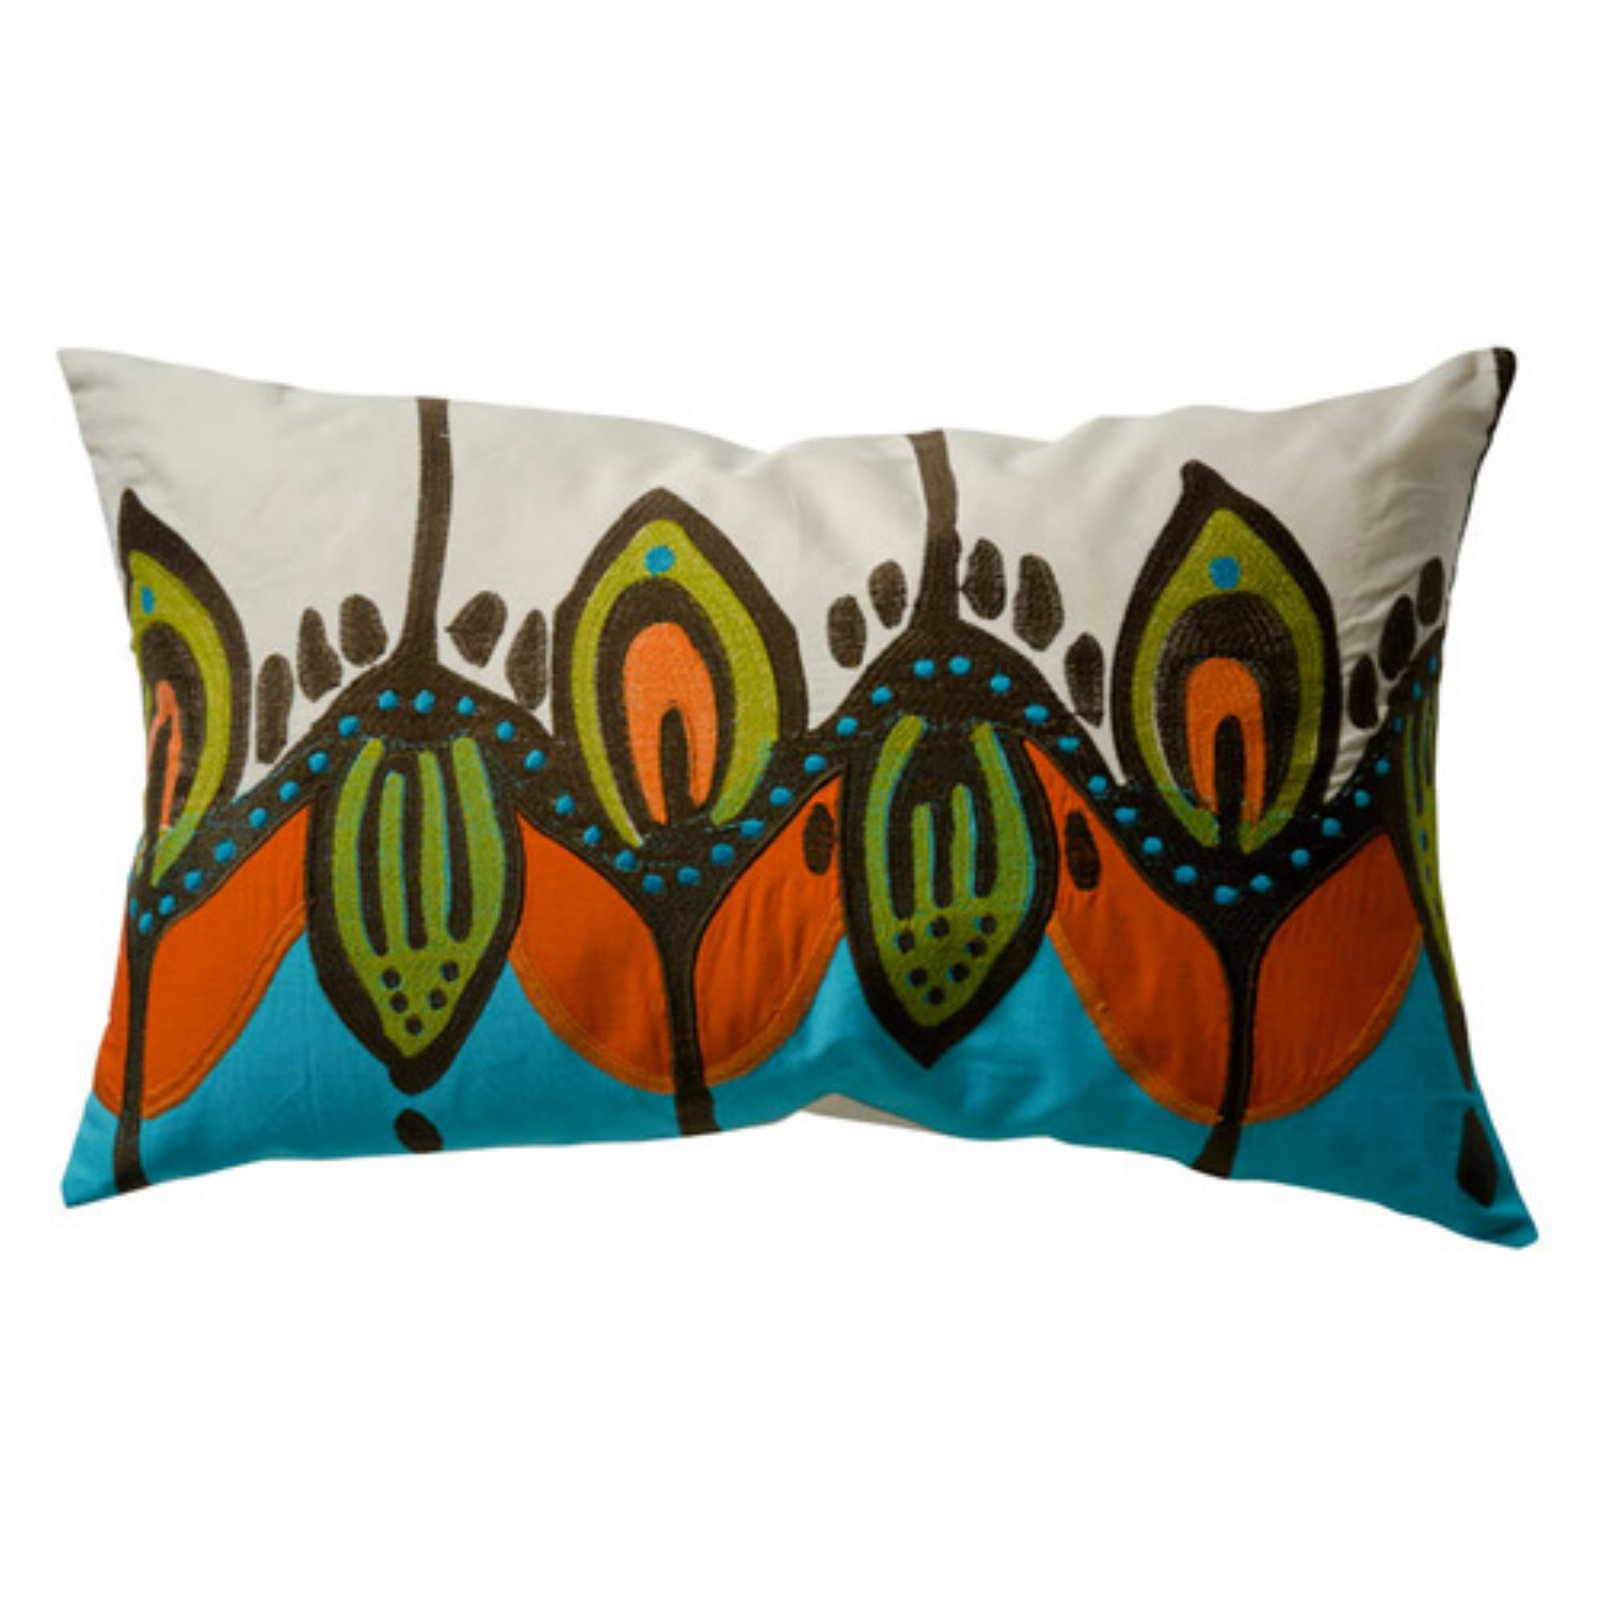 Koko Company 27 in. Coptic Oblong Pillow - Blue/Orange